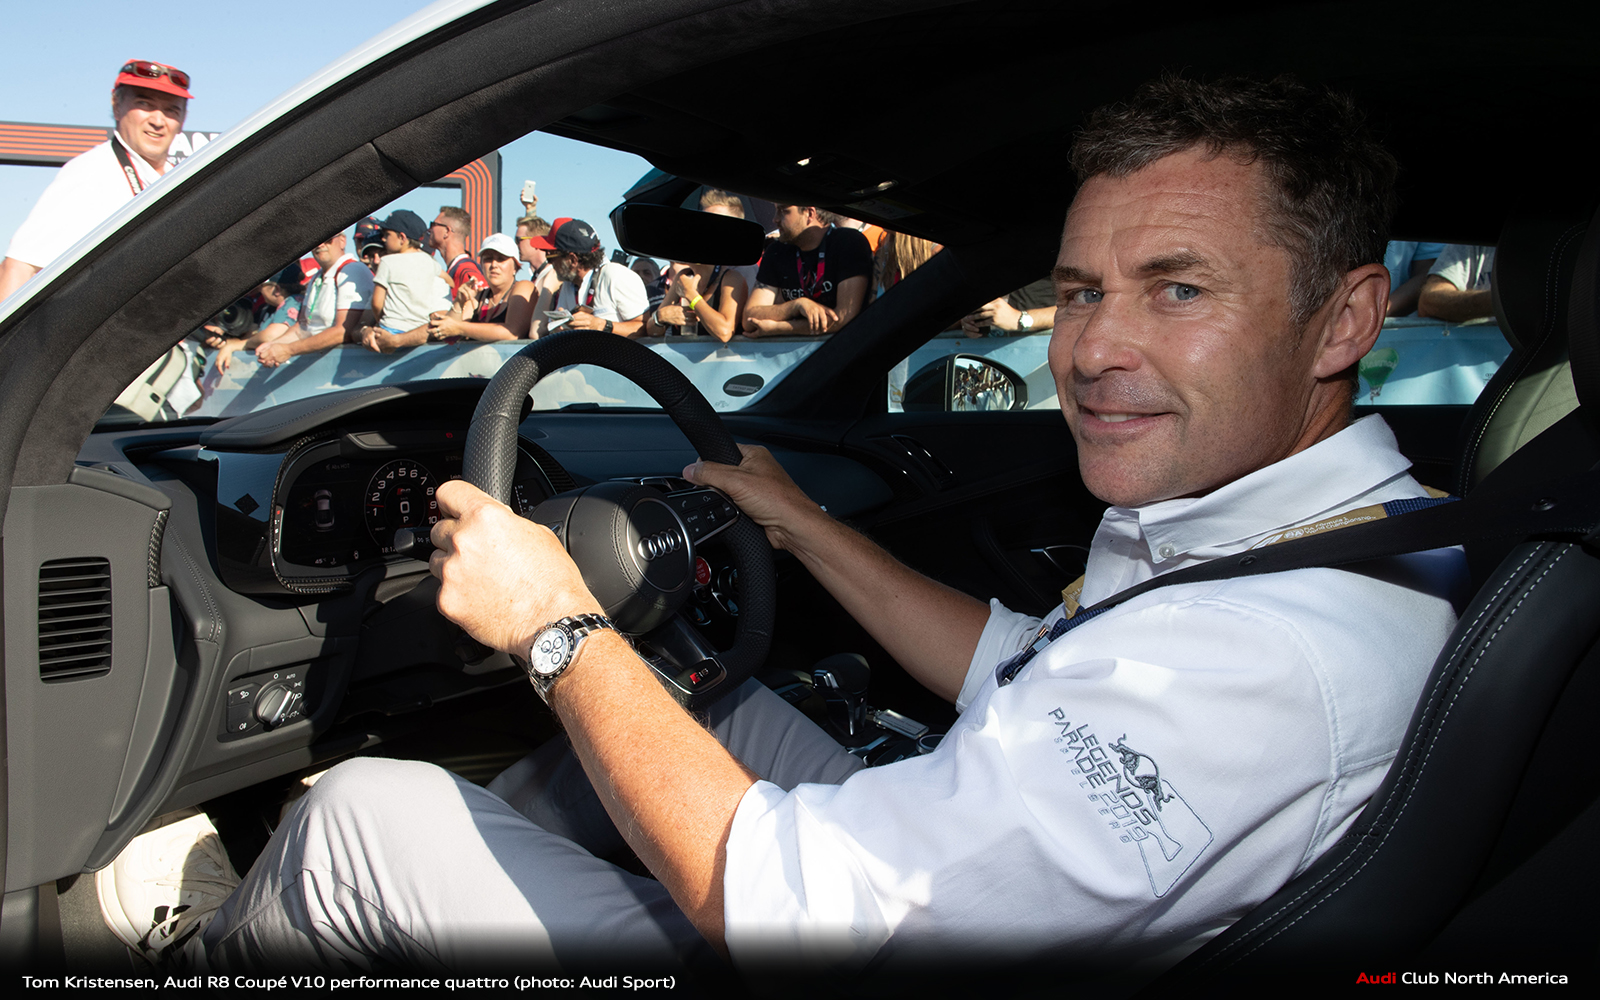 Tom Kristensen, Audi Club Nationals, A Track Day...Oh My